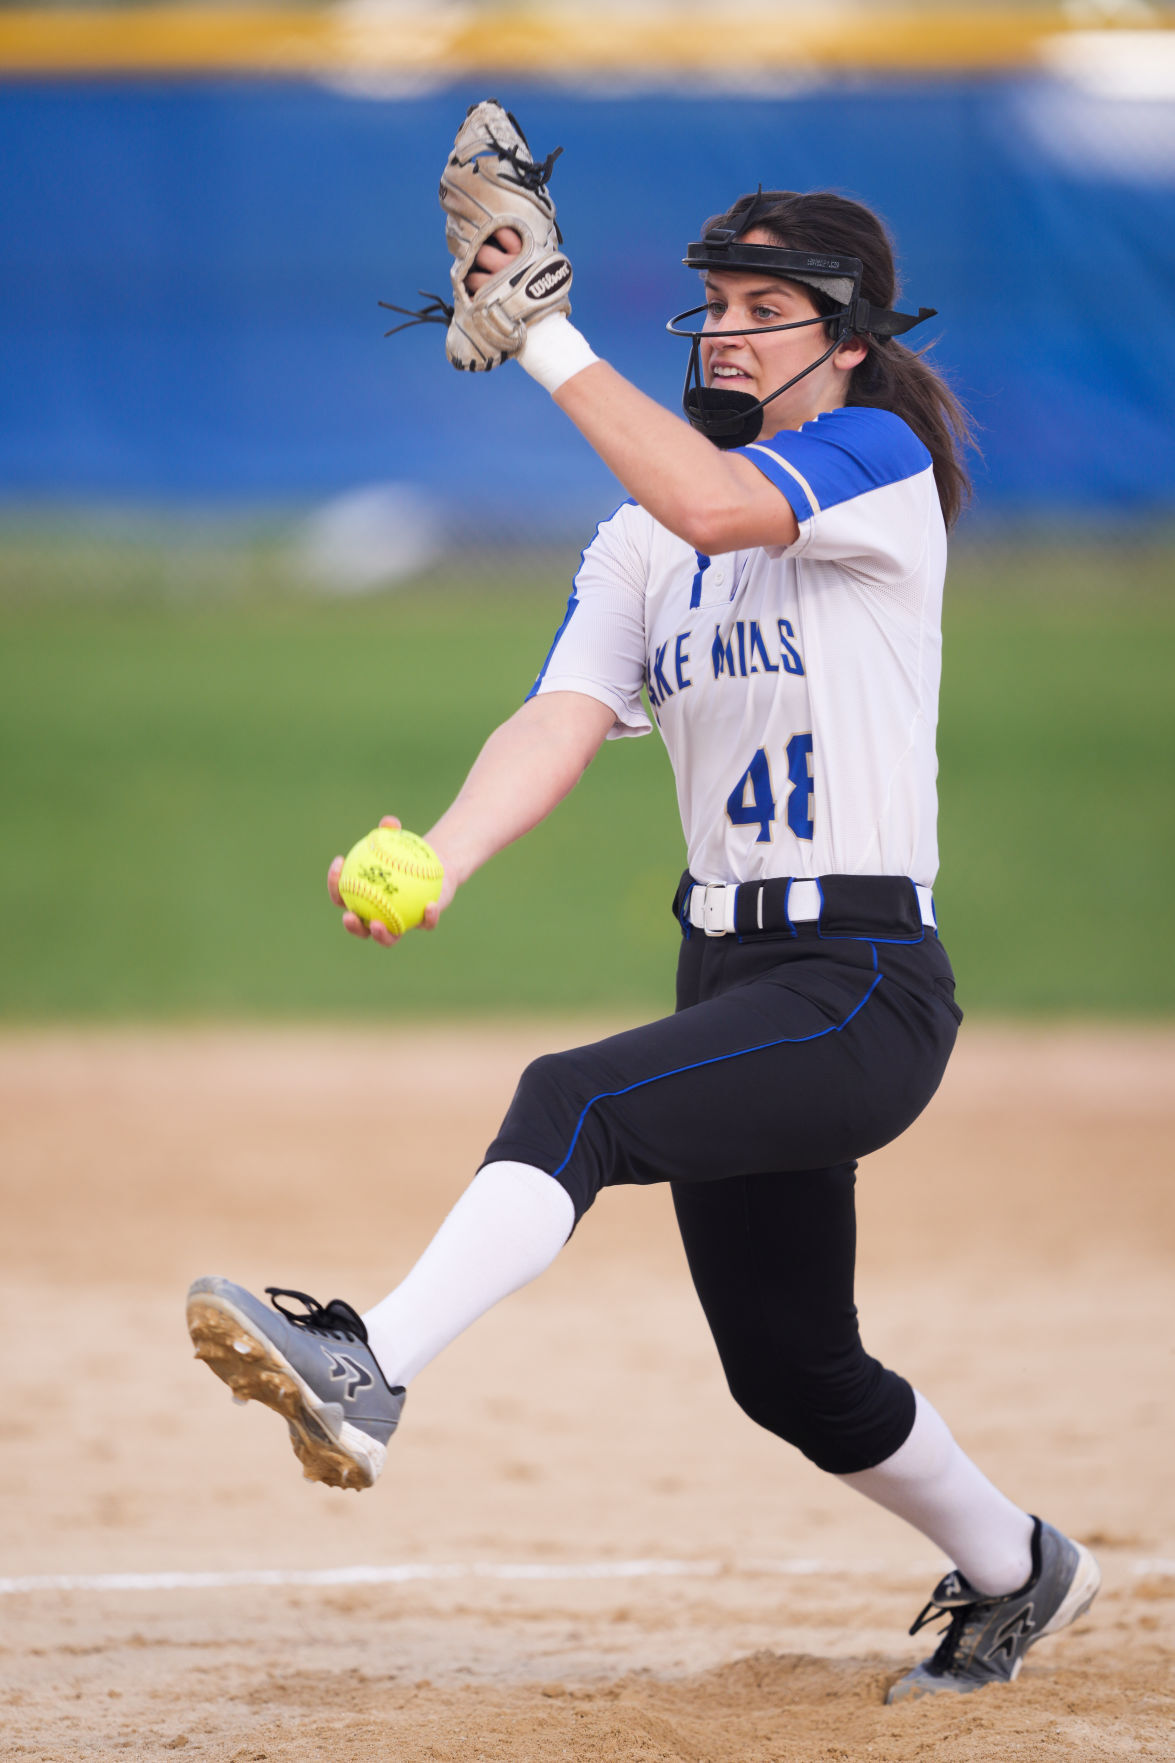 Prep softball photo: Taylor Roughen winds up against Lodi